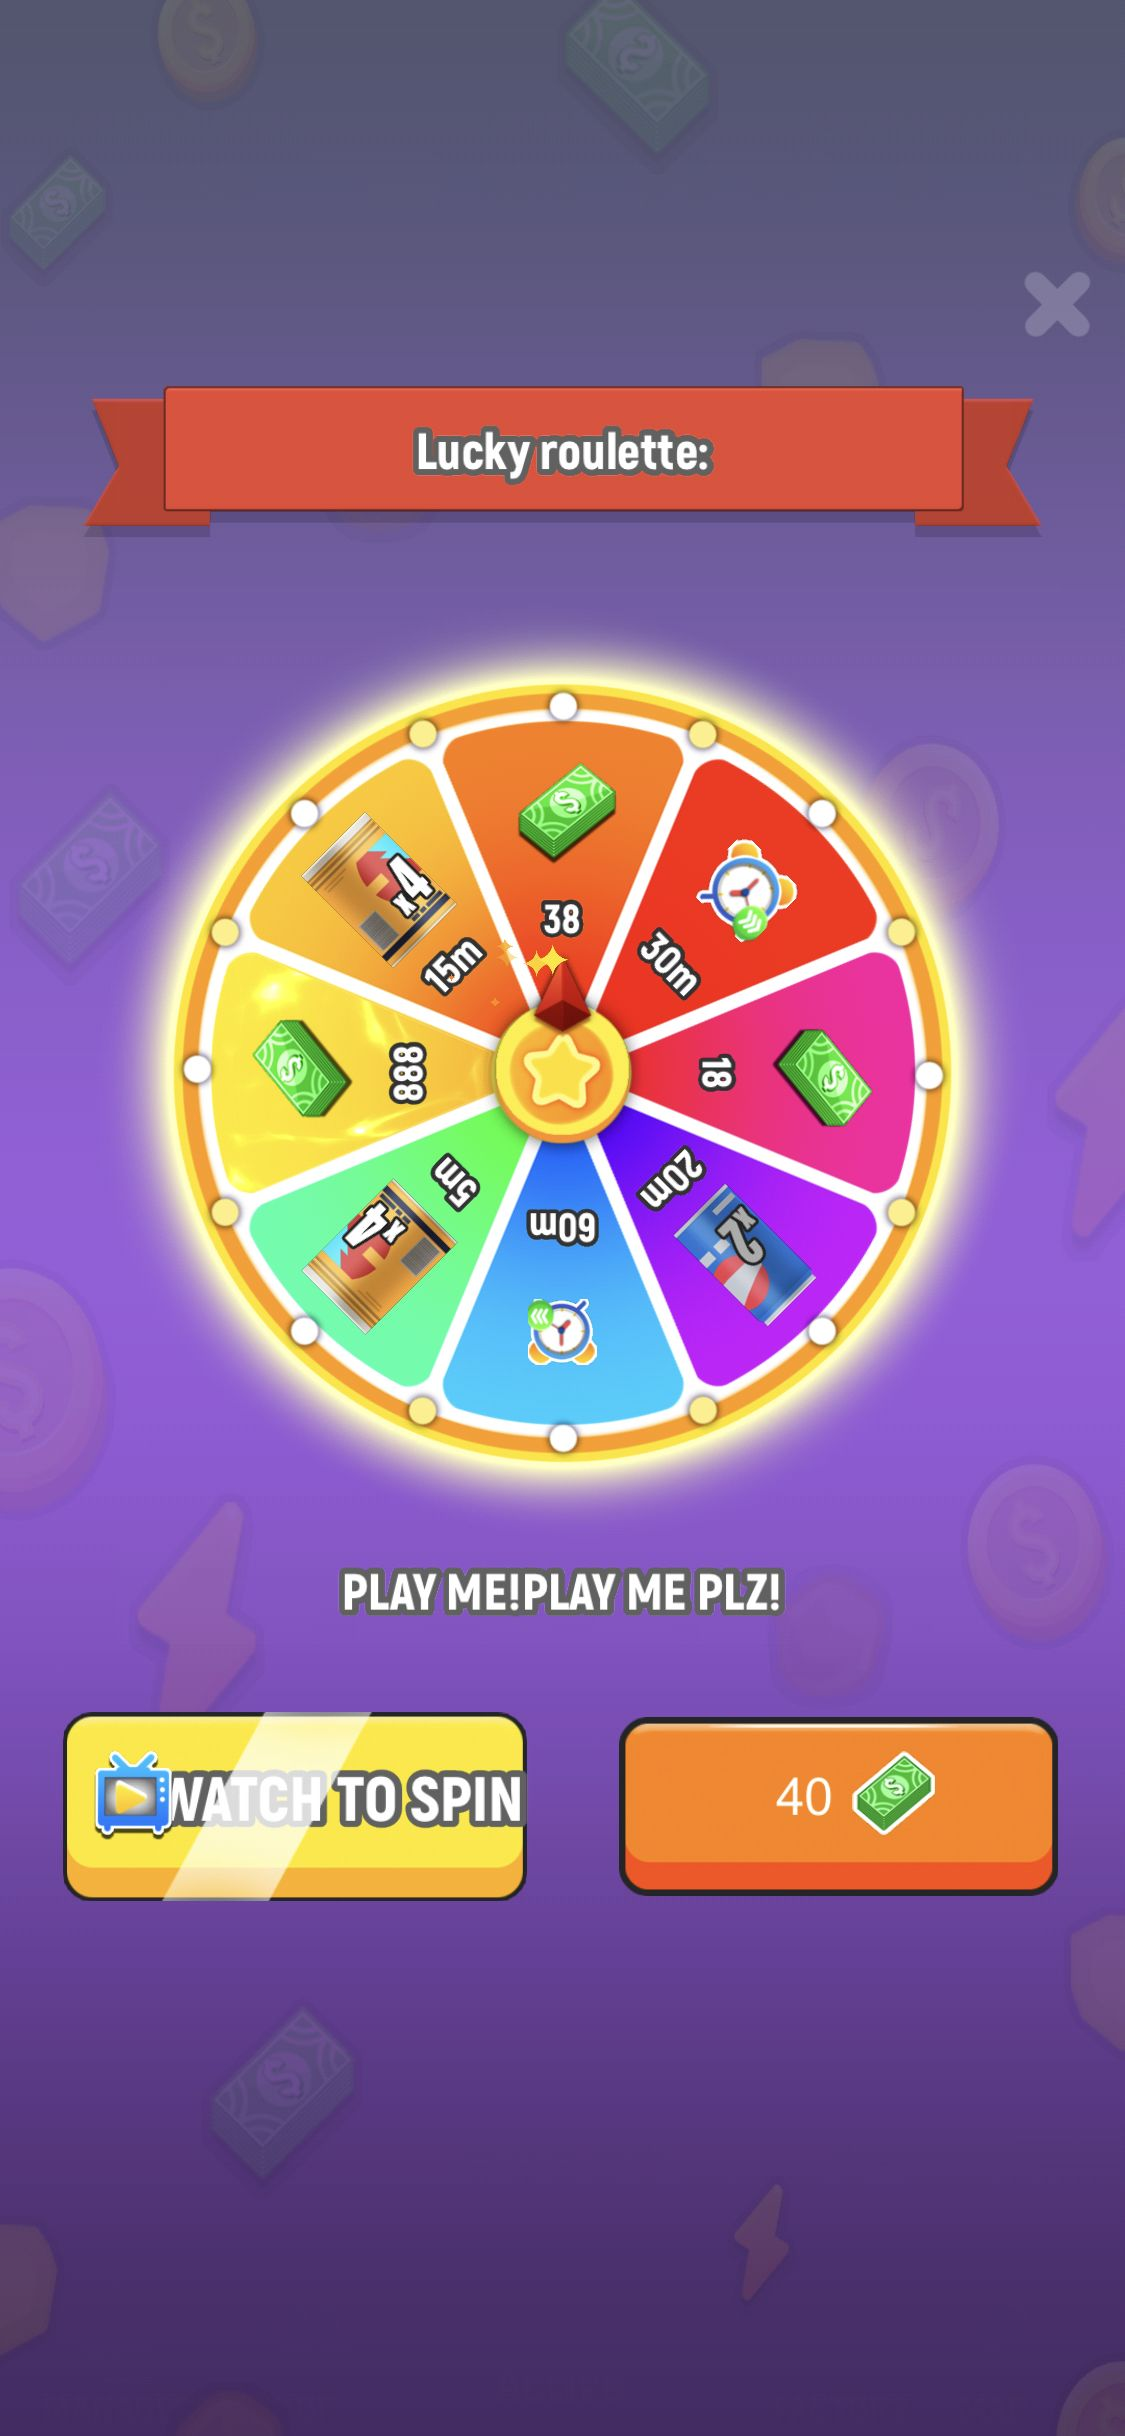 Pin by GAME DESIGN on Wheel of Fortune Wheel of fortune